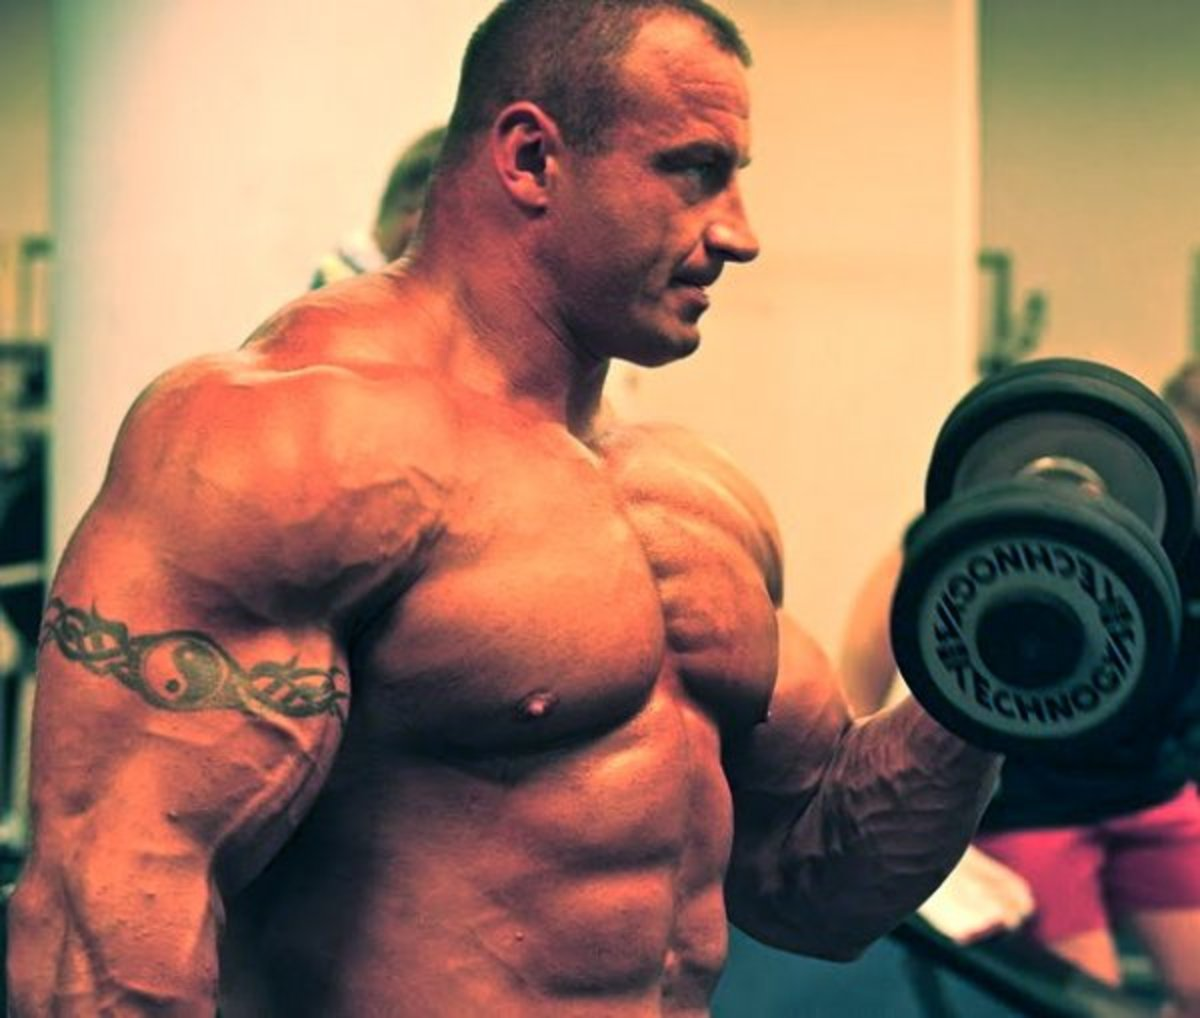 Mariusz knows how to train for size and strength.